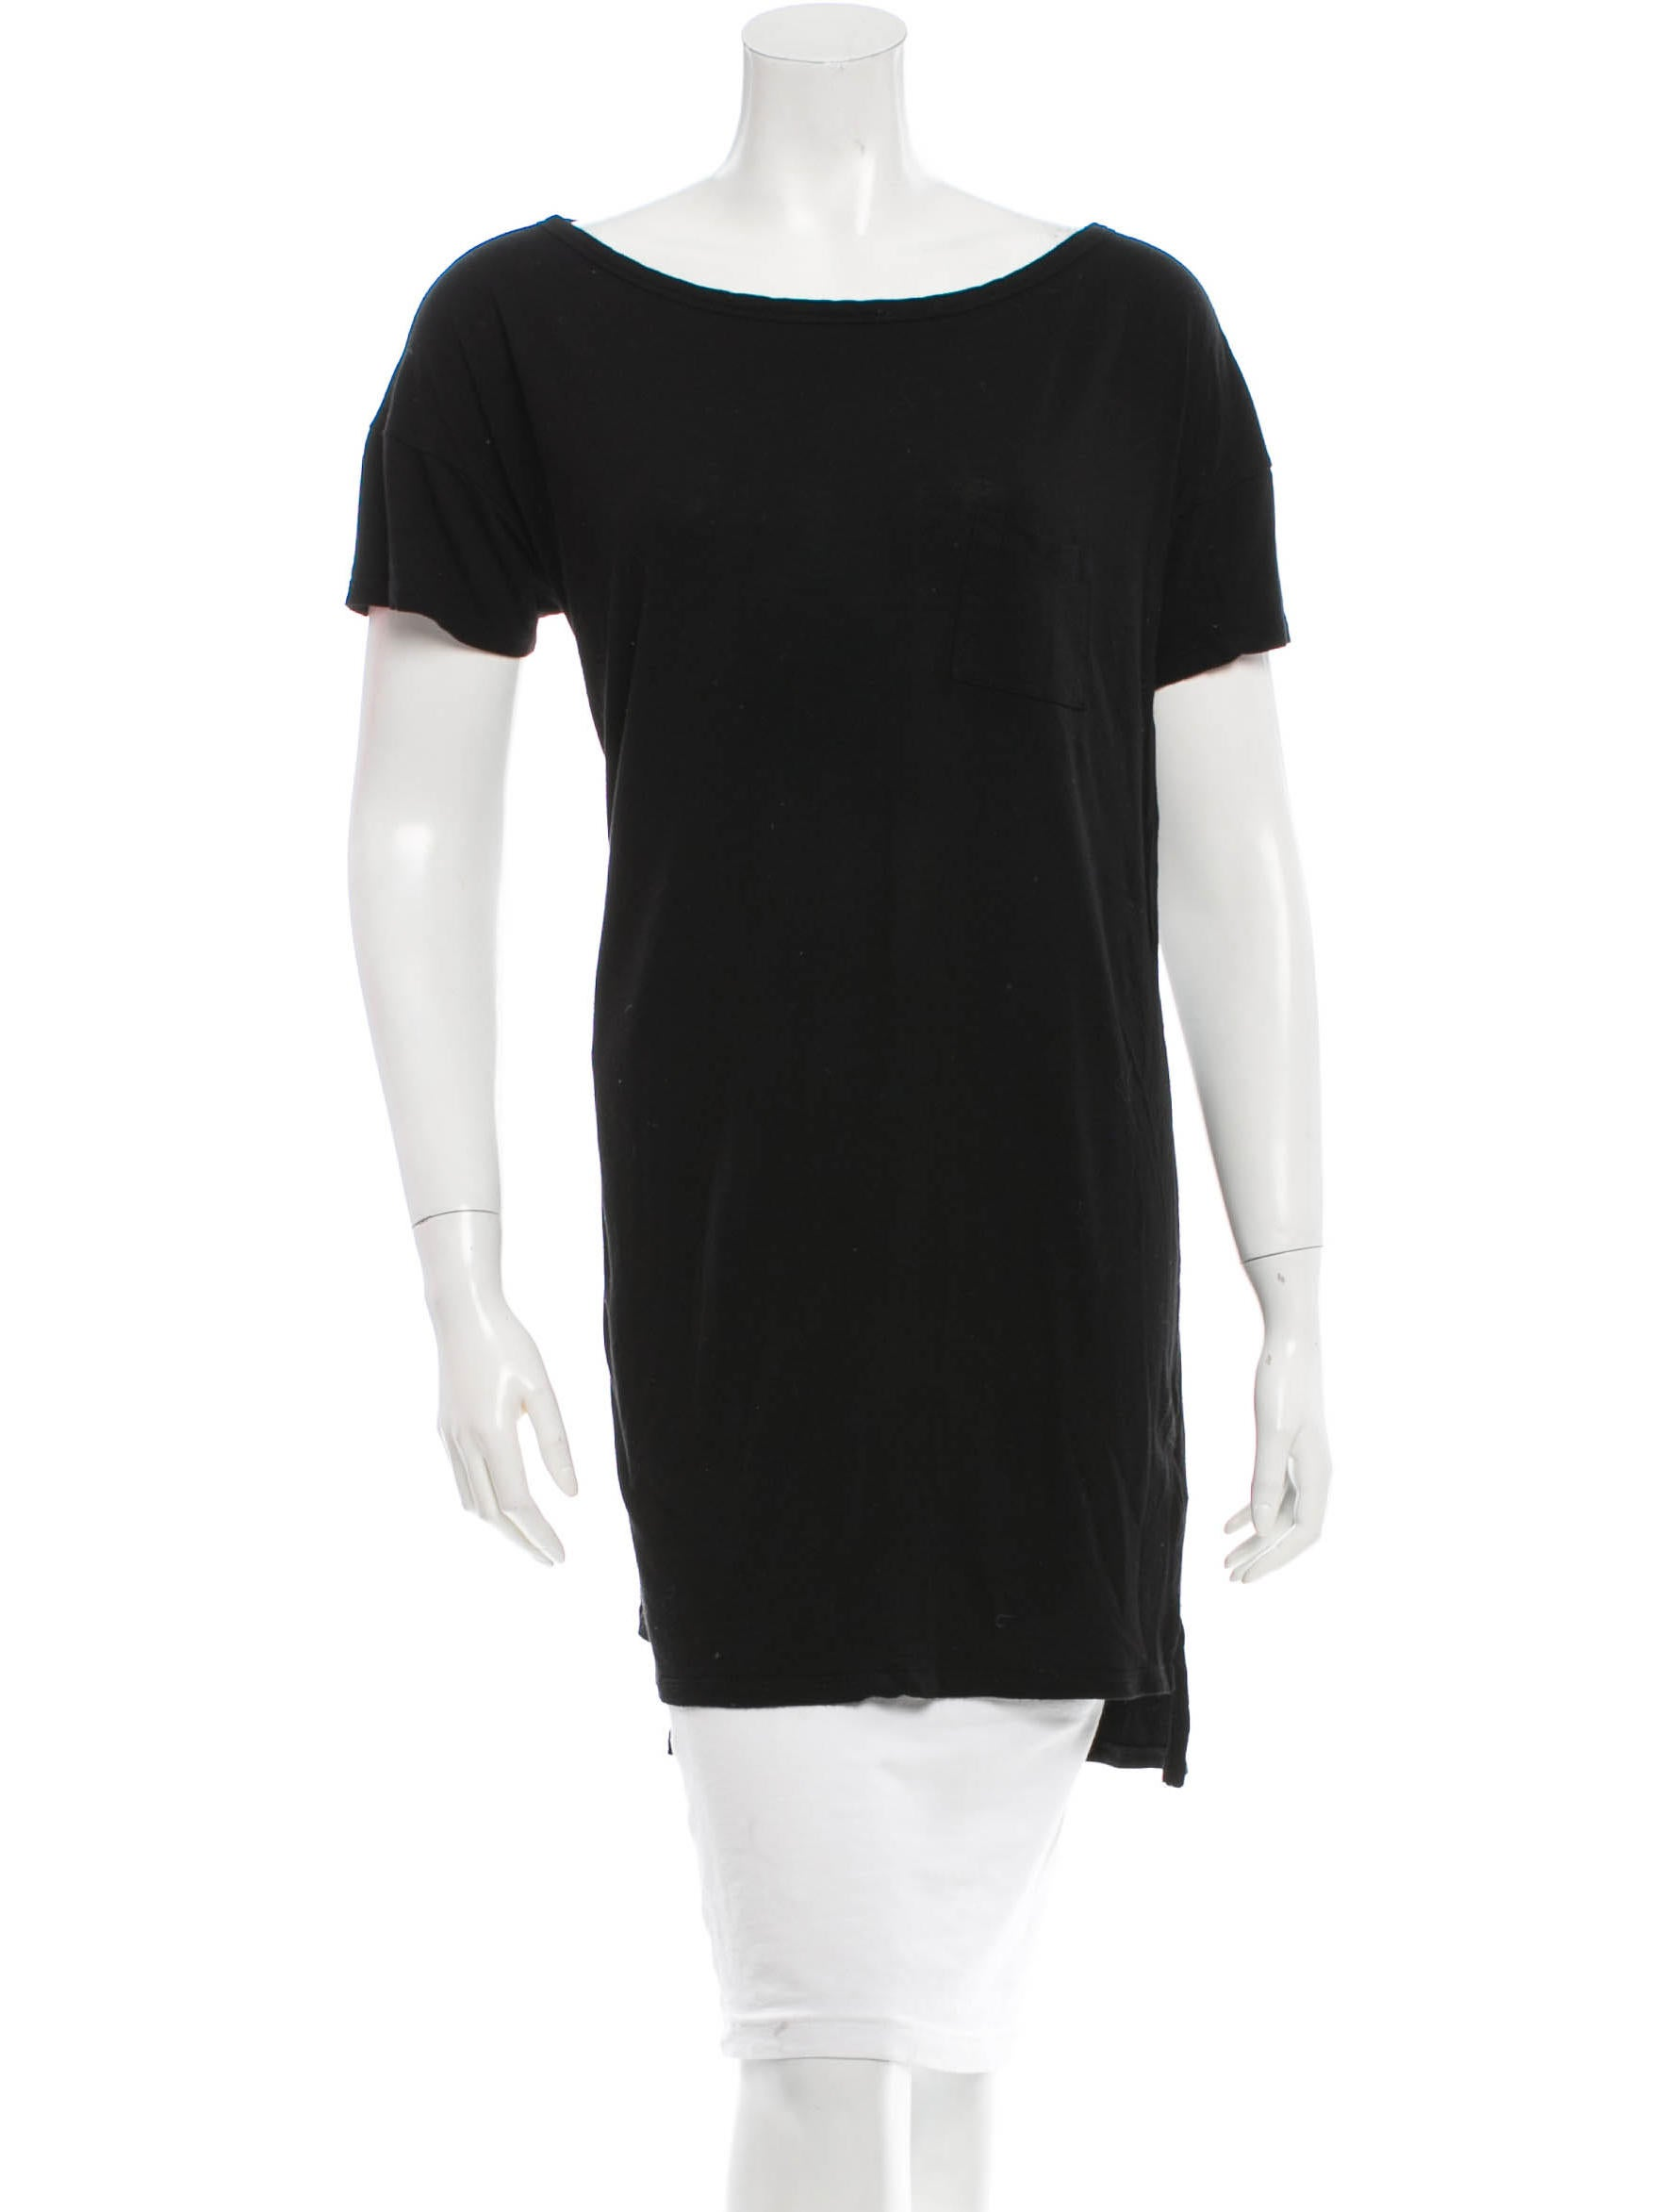 t by alexander wang short sleeve t shirt top clothing wtb25790 the realreal. Black Bedroom Furniture Sets. Home Design Ideas